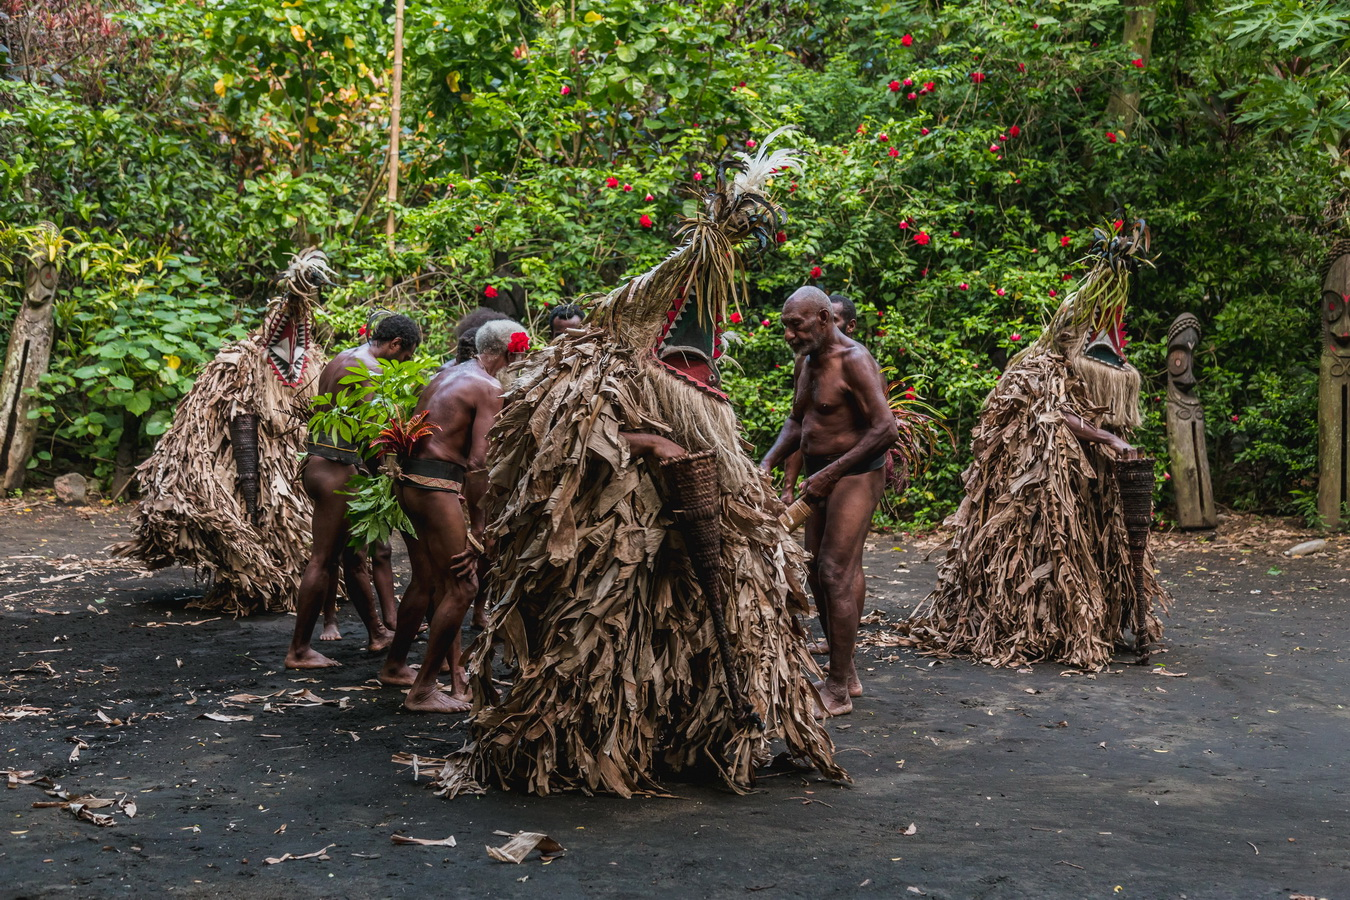 local traditions,Rom dances,Fanla, north Ambrym, Ambrym, Vanuatu